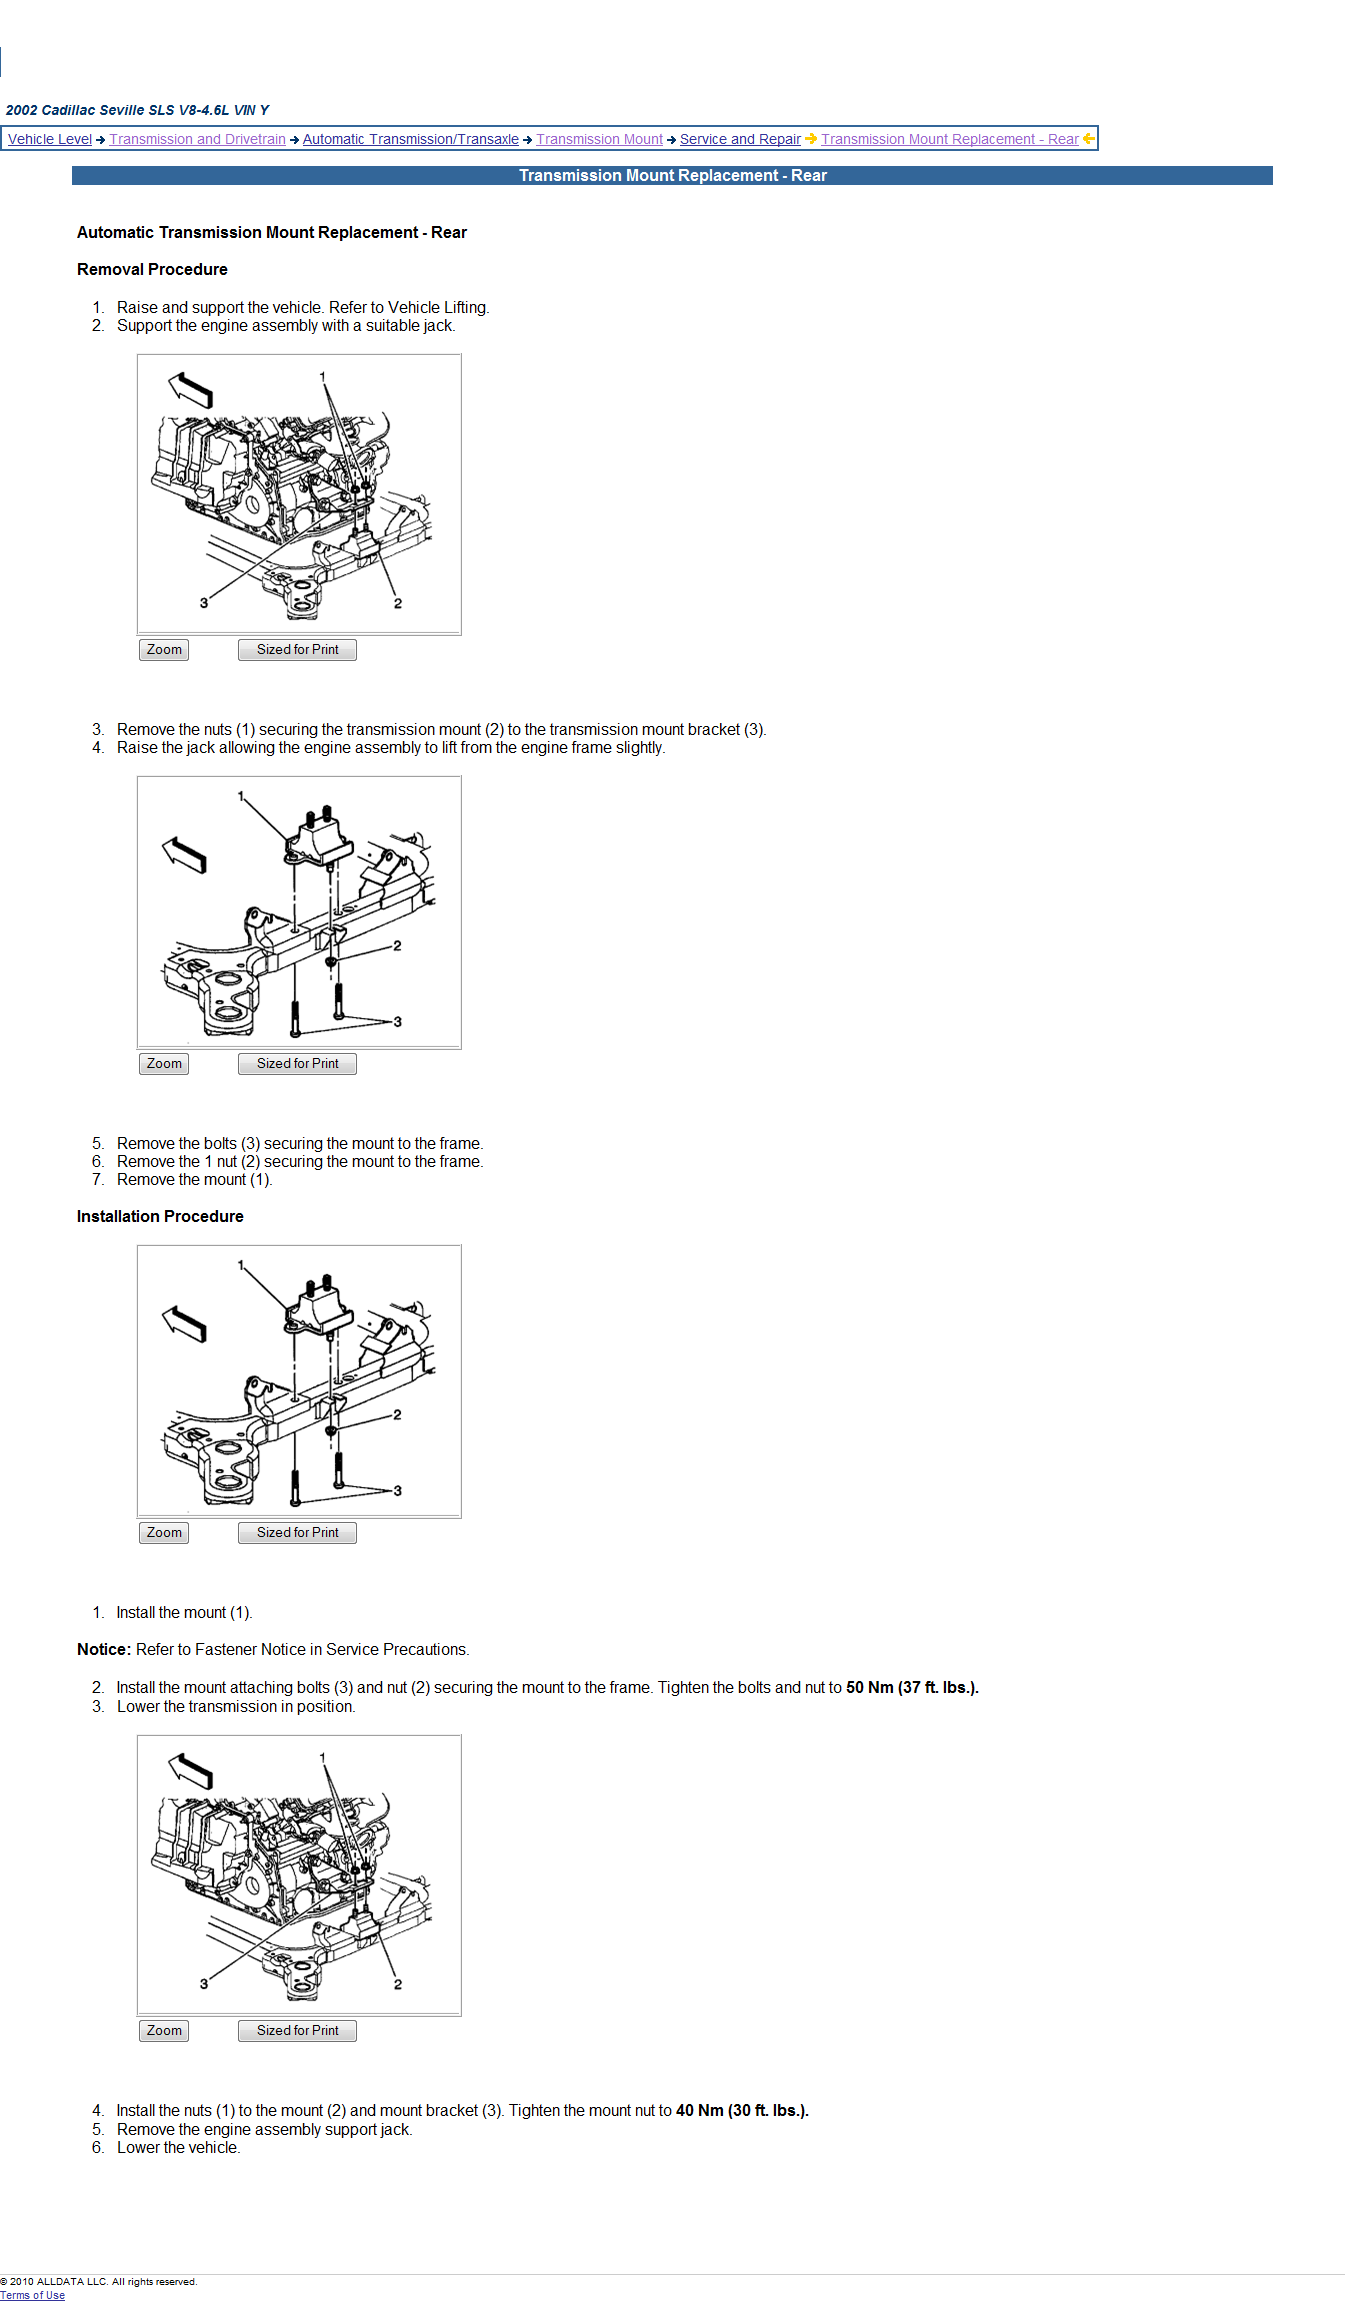 Instructions On How To Replace A Rear Motor Mount On A